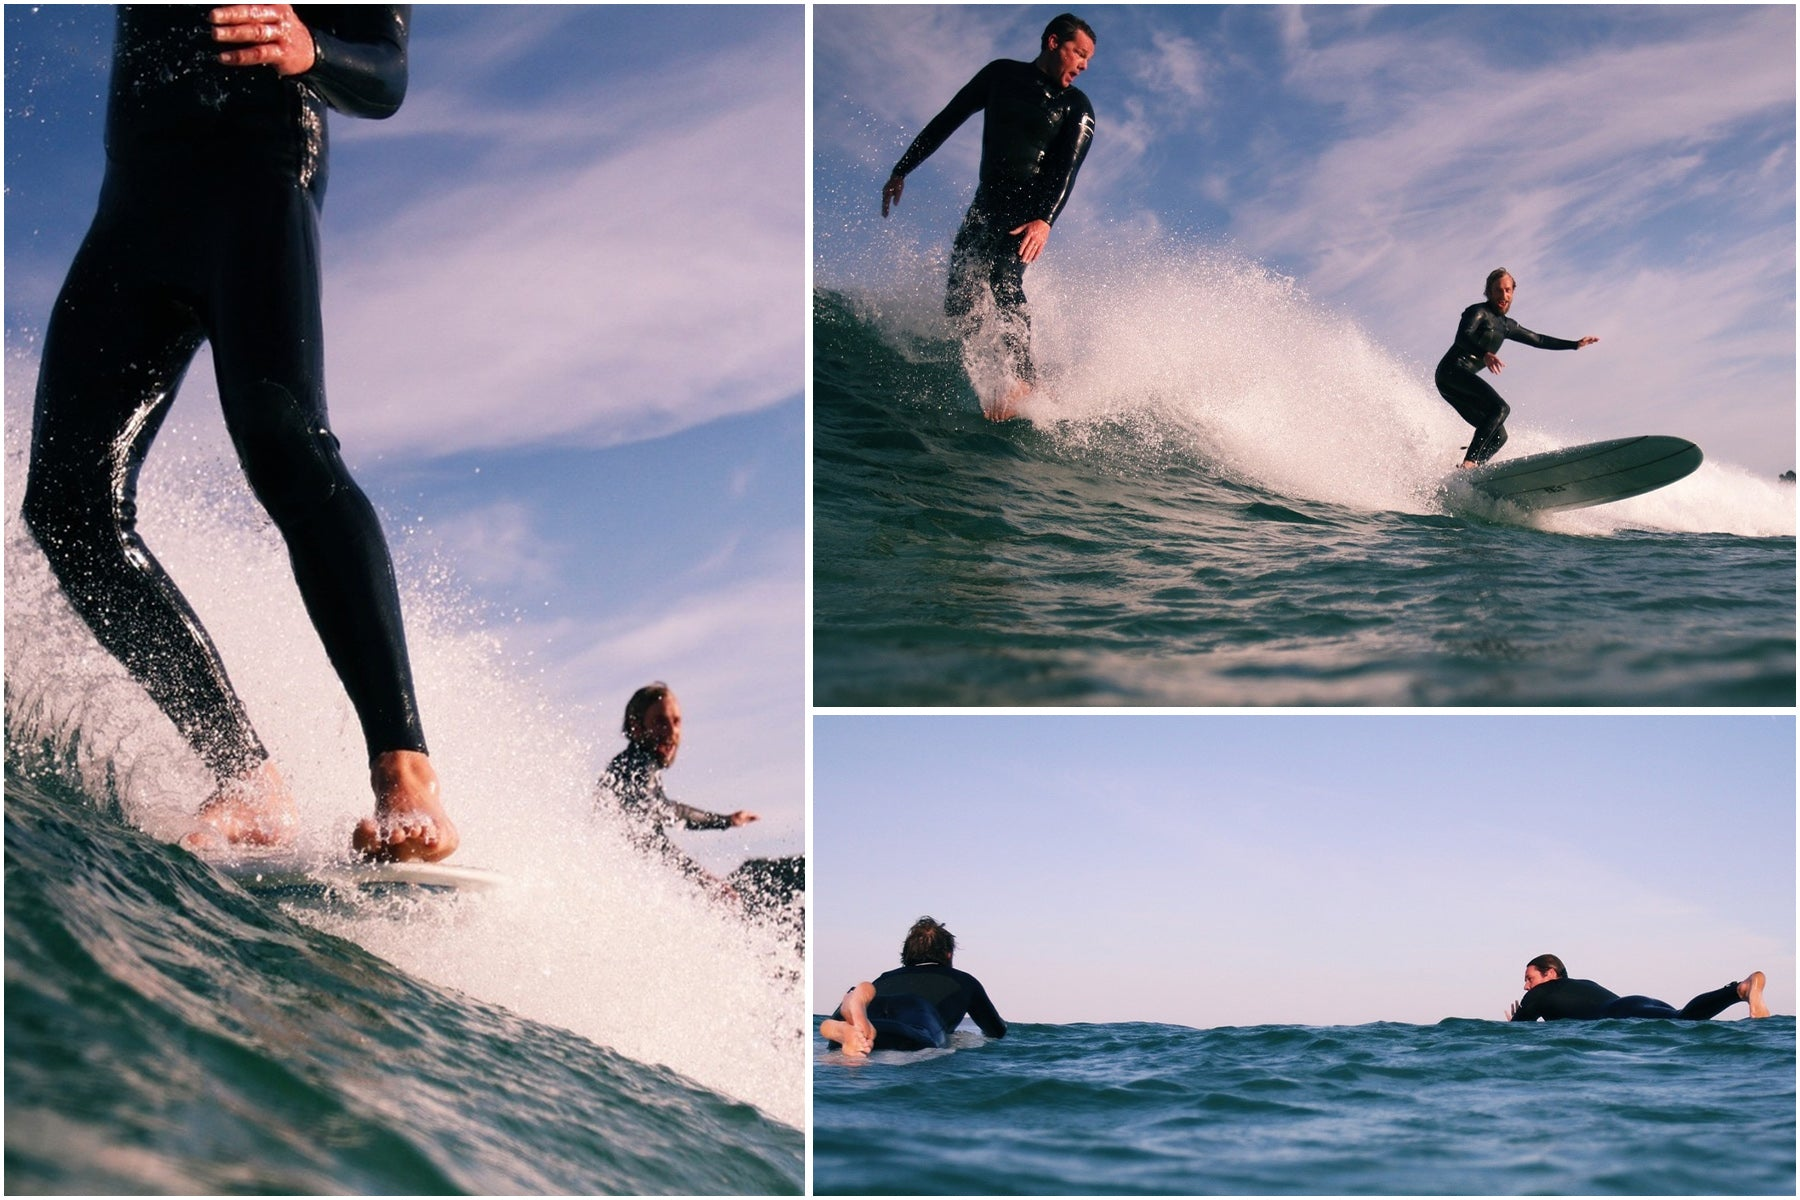 Sam Bleakley and Mike Lay Sharing some tasty waves at their local beach in west Cornwall